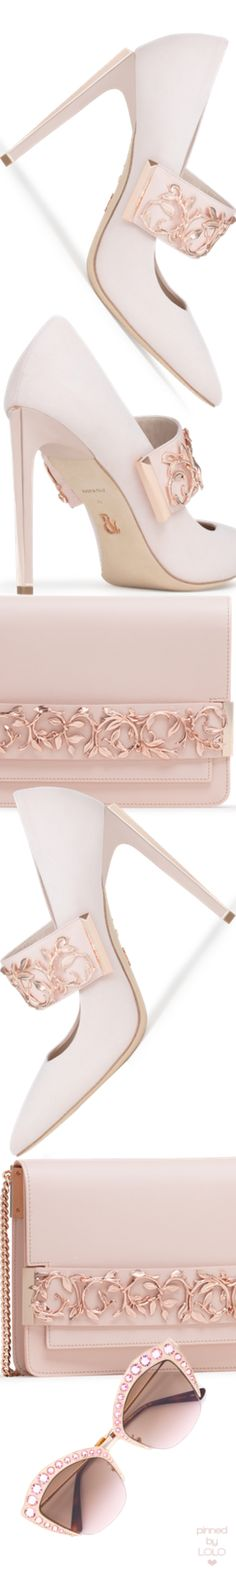 Ralph and Russo Shoes and Bag, Gucci Sunglasses